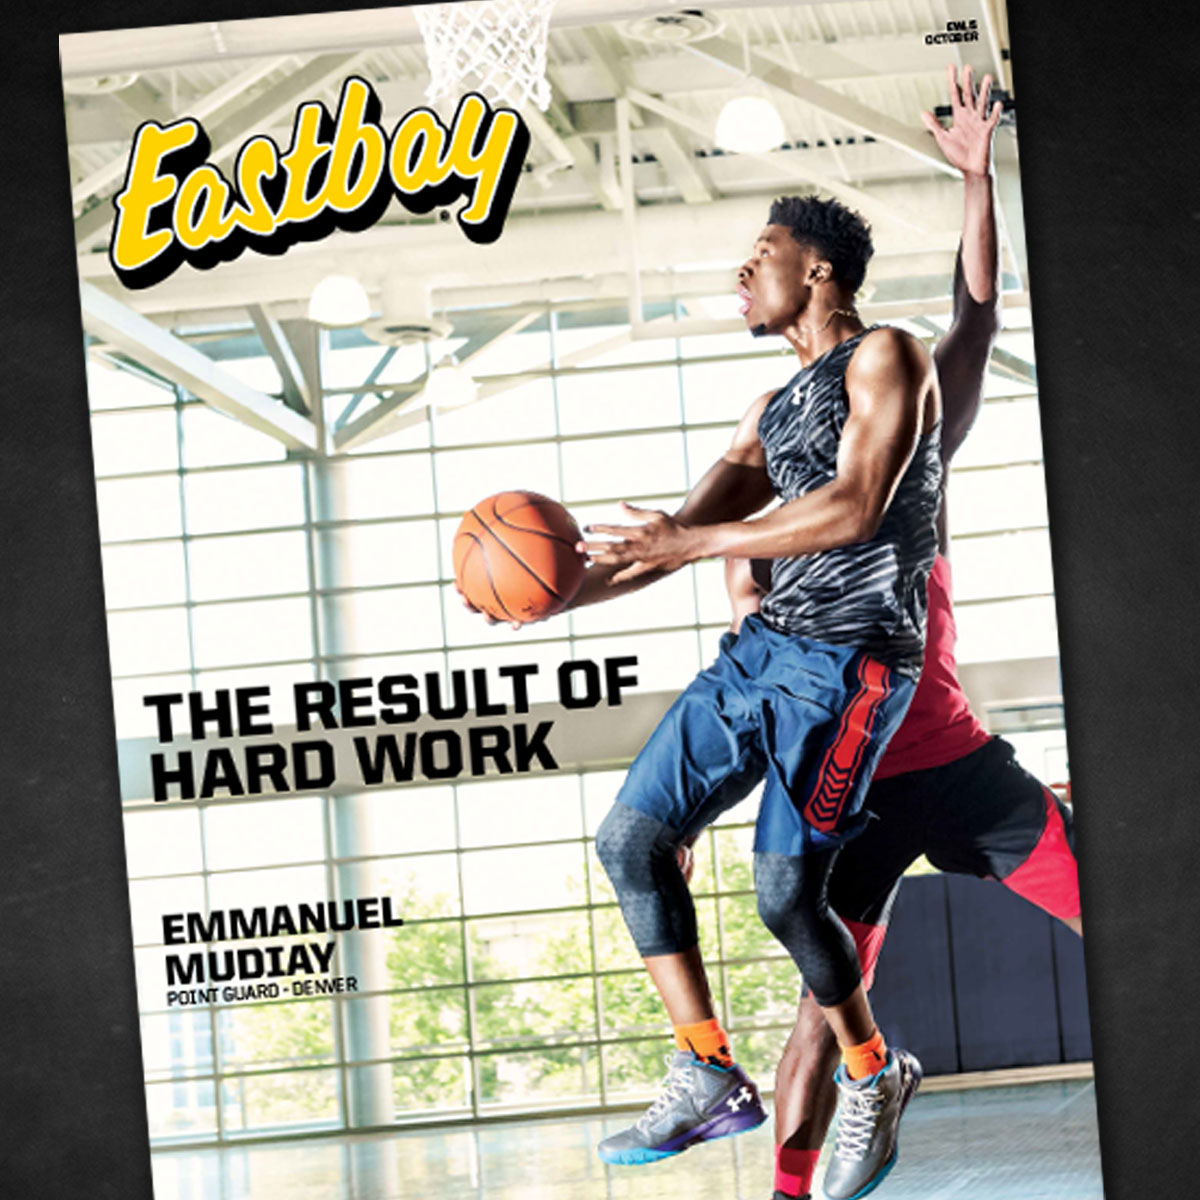 2015 In Review: The Best Of Eastbay Athletes